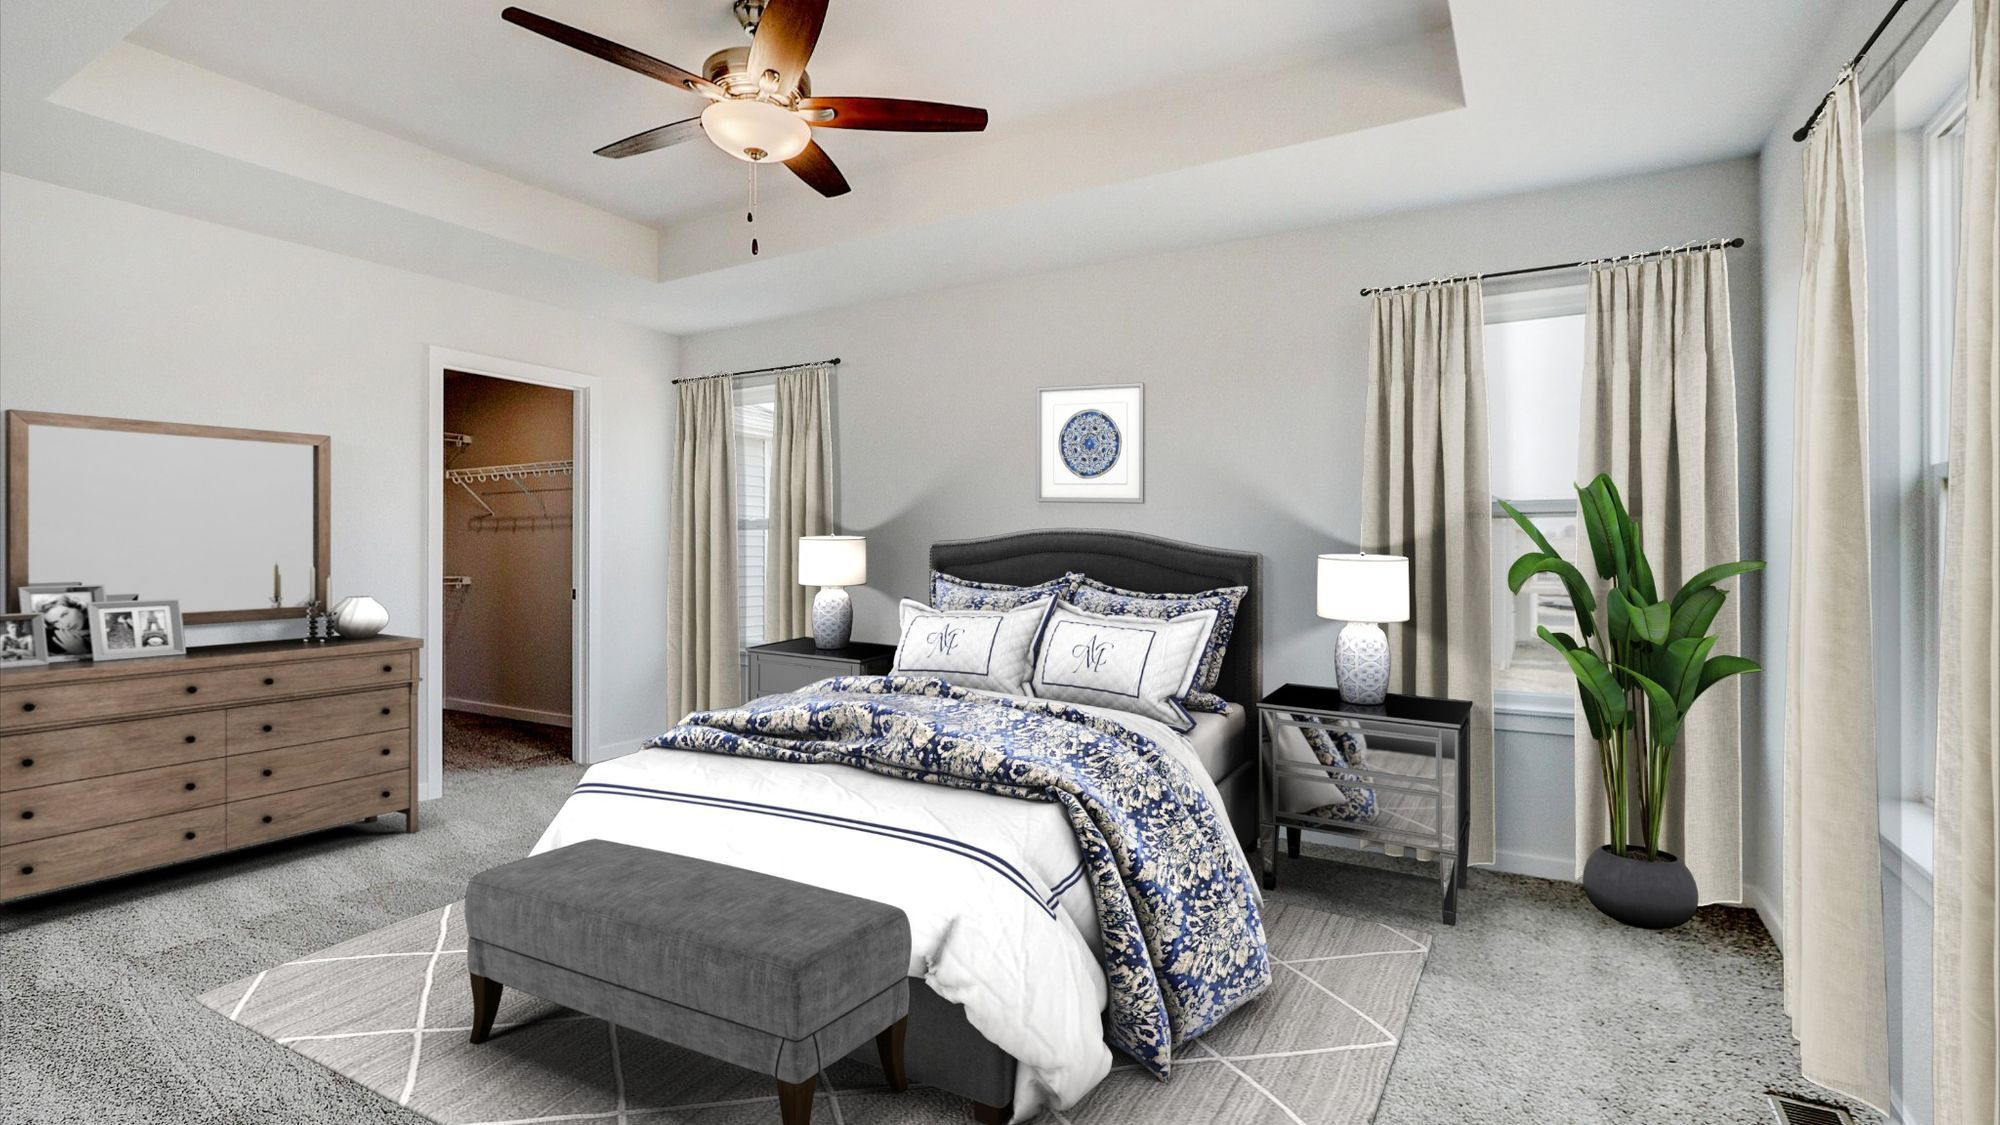 Bedroom featured in The Charleston By Harbor Homes in Washington-Fond du Lac, WI